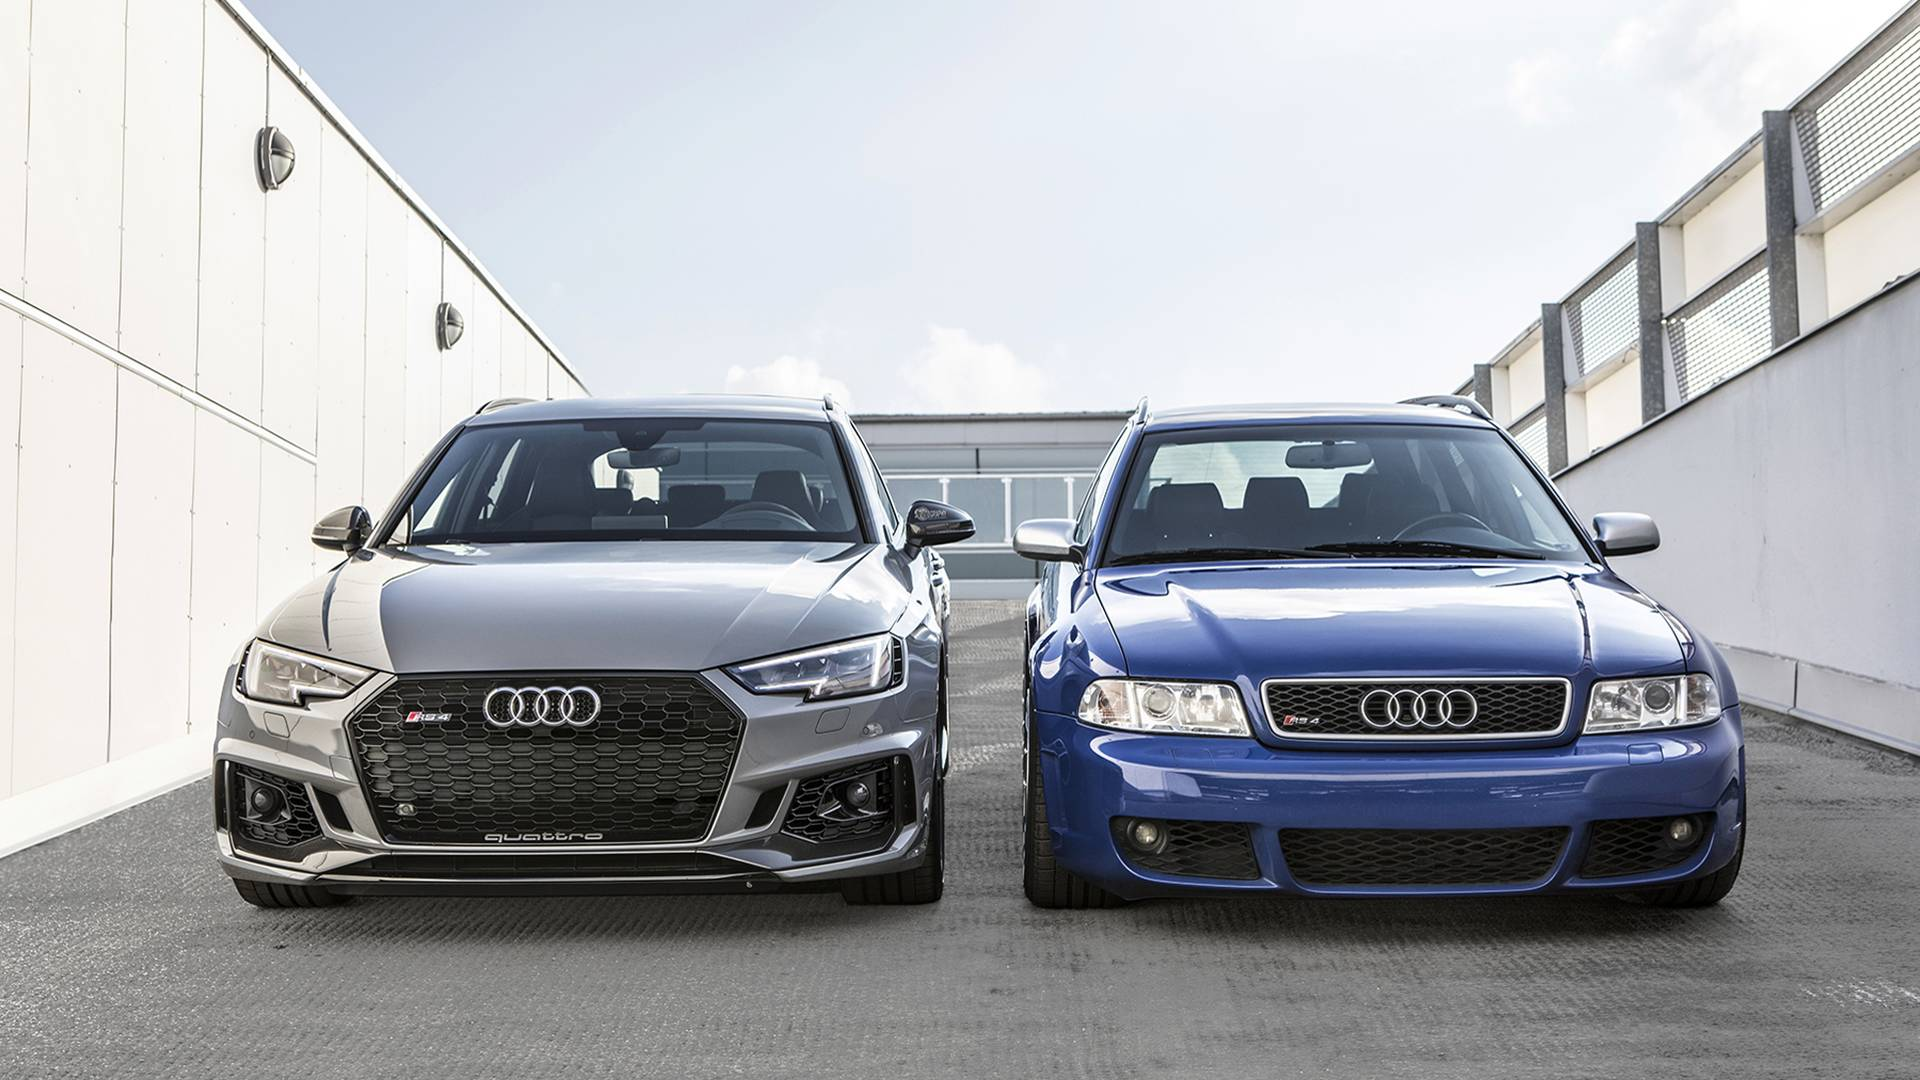 Past Meets Present: 2001 Audi RS4 Avant Joined By 2018 Model